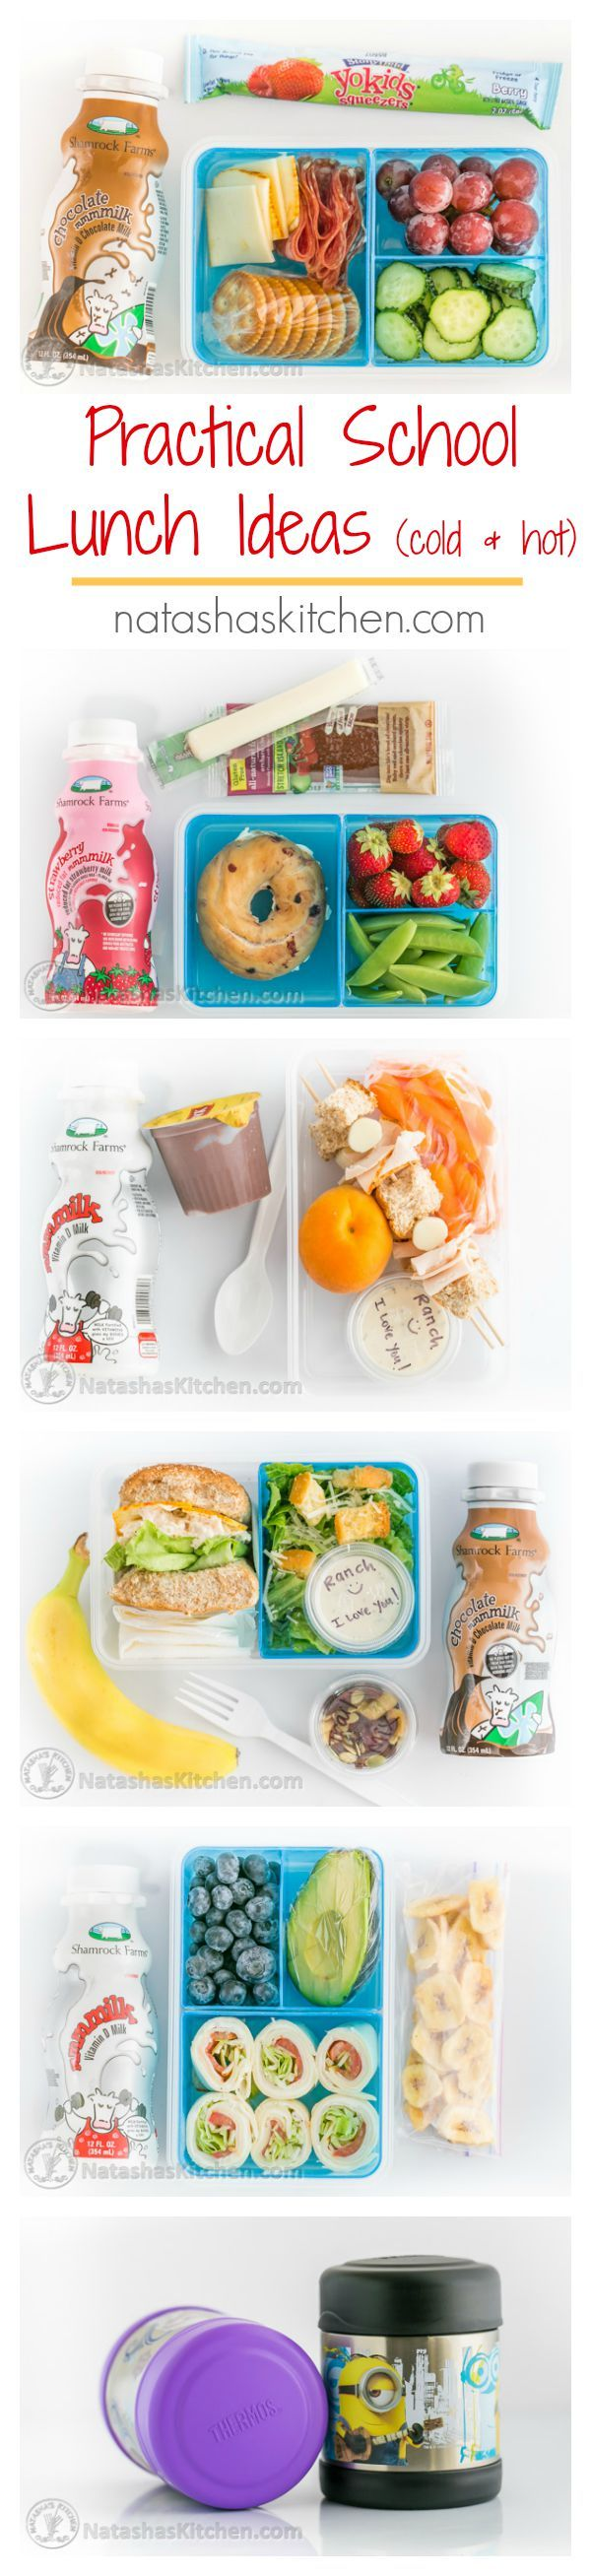 You'll want to pin these practical School Lunch Ideas. Cold and hot school lunches your kids will actually eat! #shamrockatwalmart #sk #ad | natashaskitchen.com